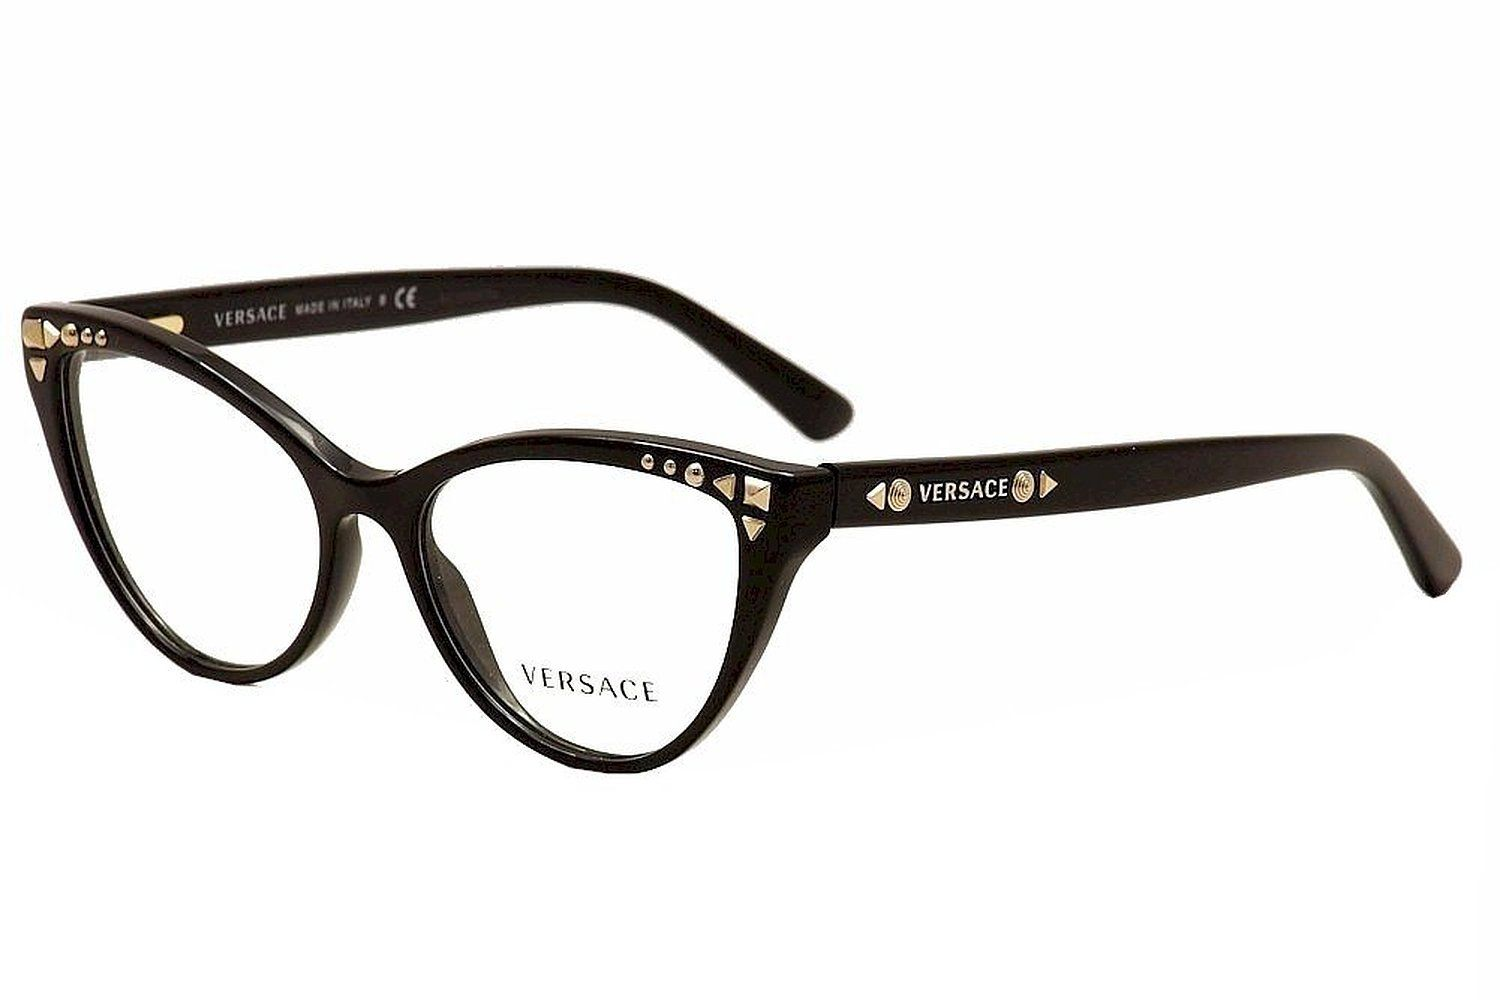 versace ve3191 eyeglasses gb1 black 54mm